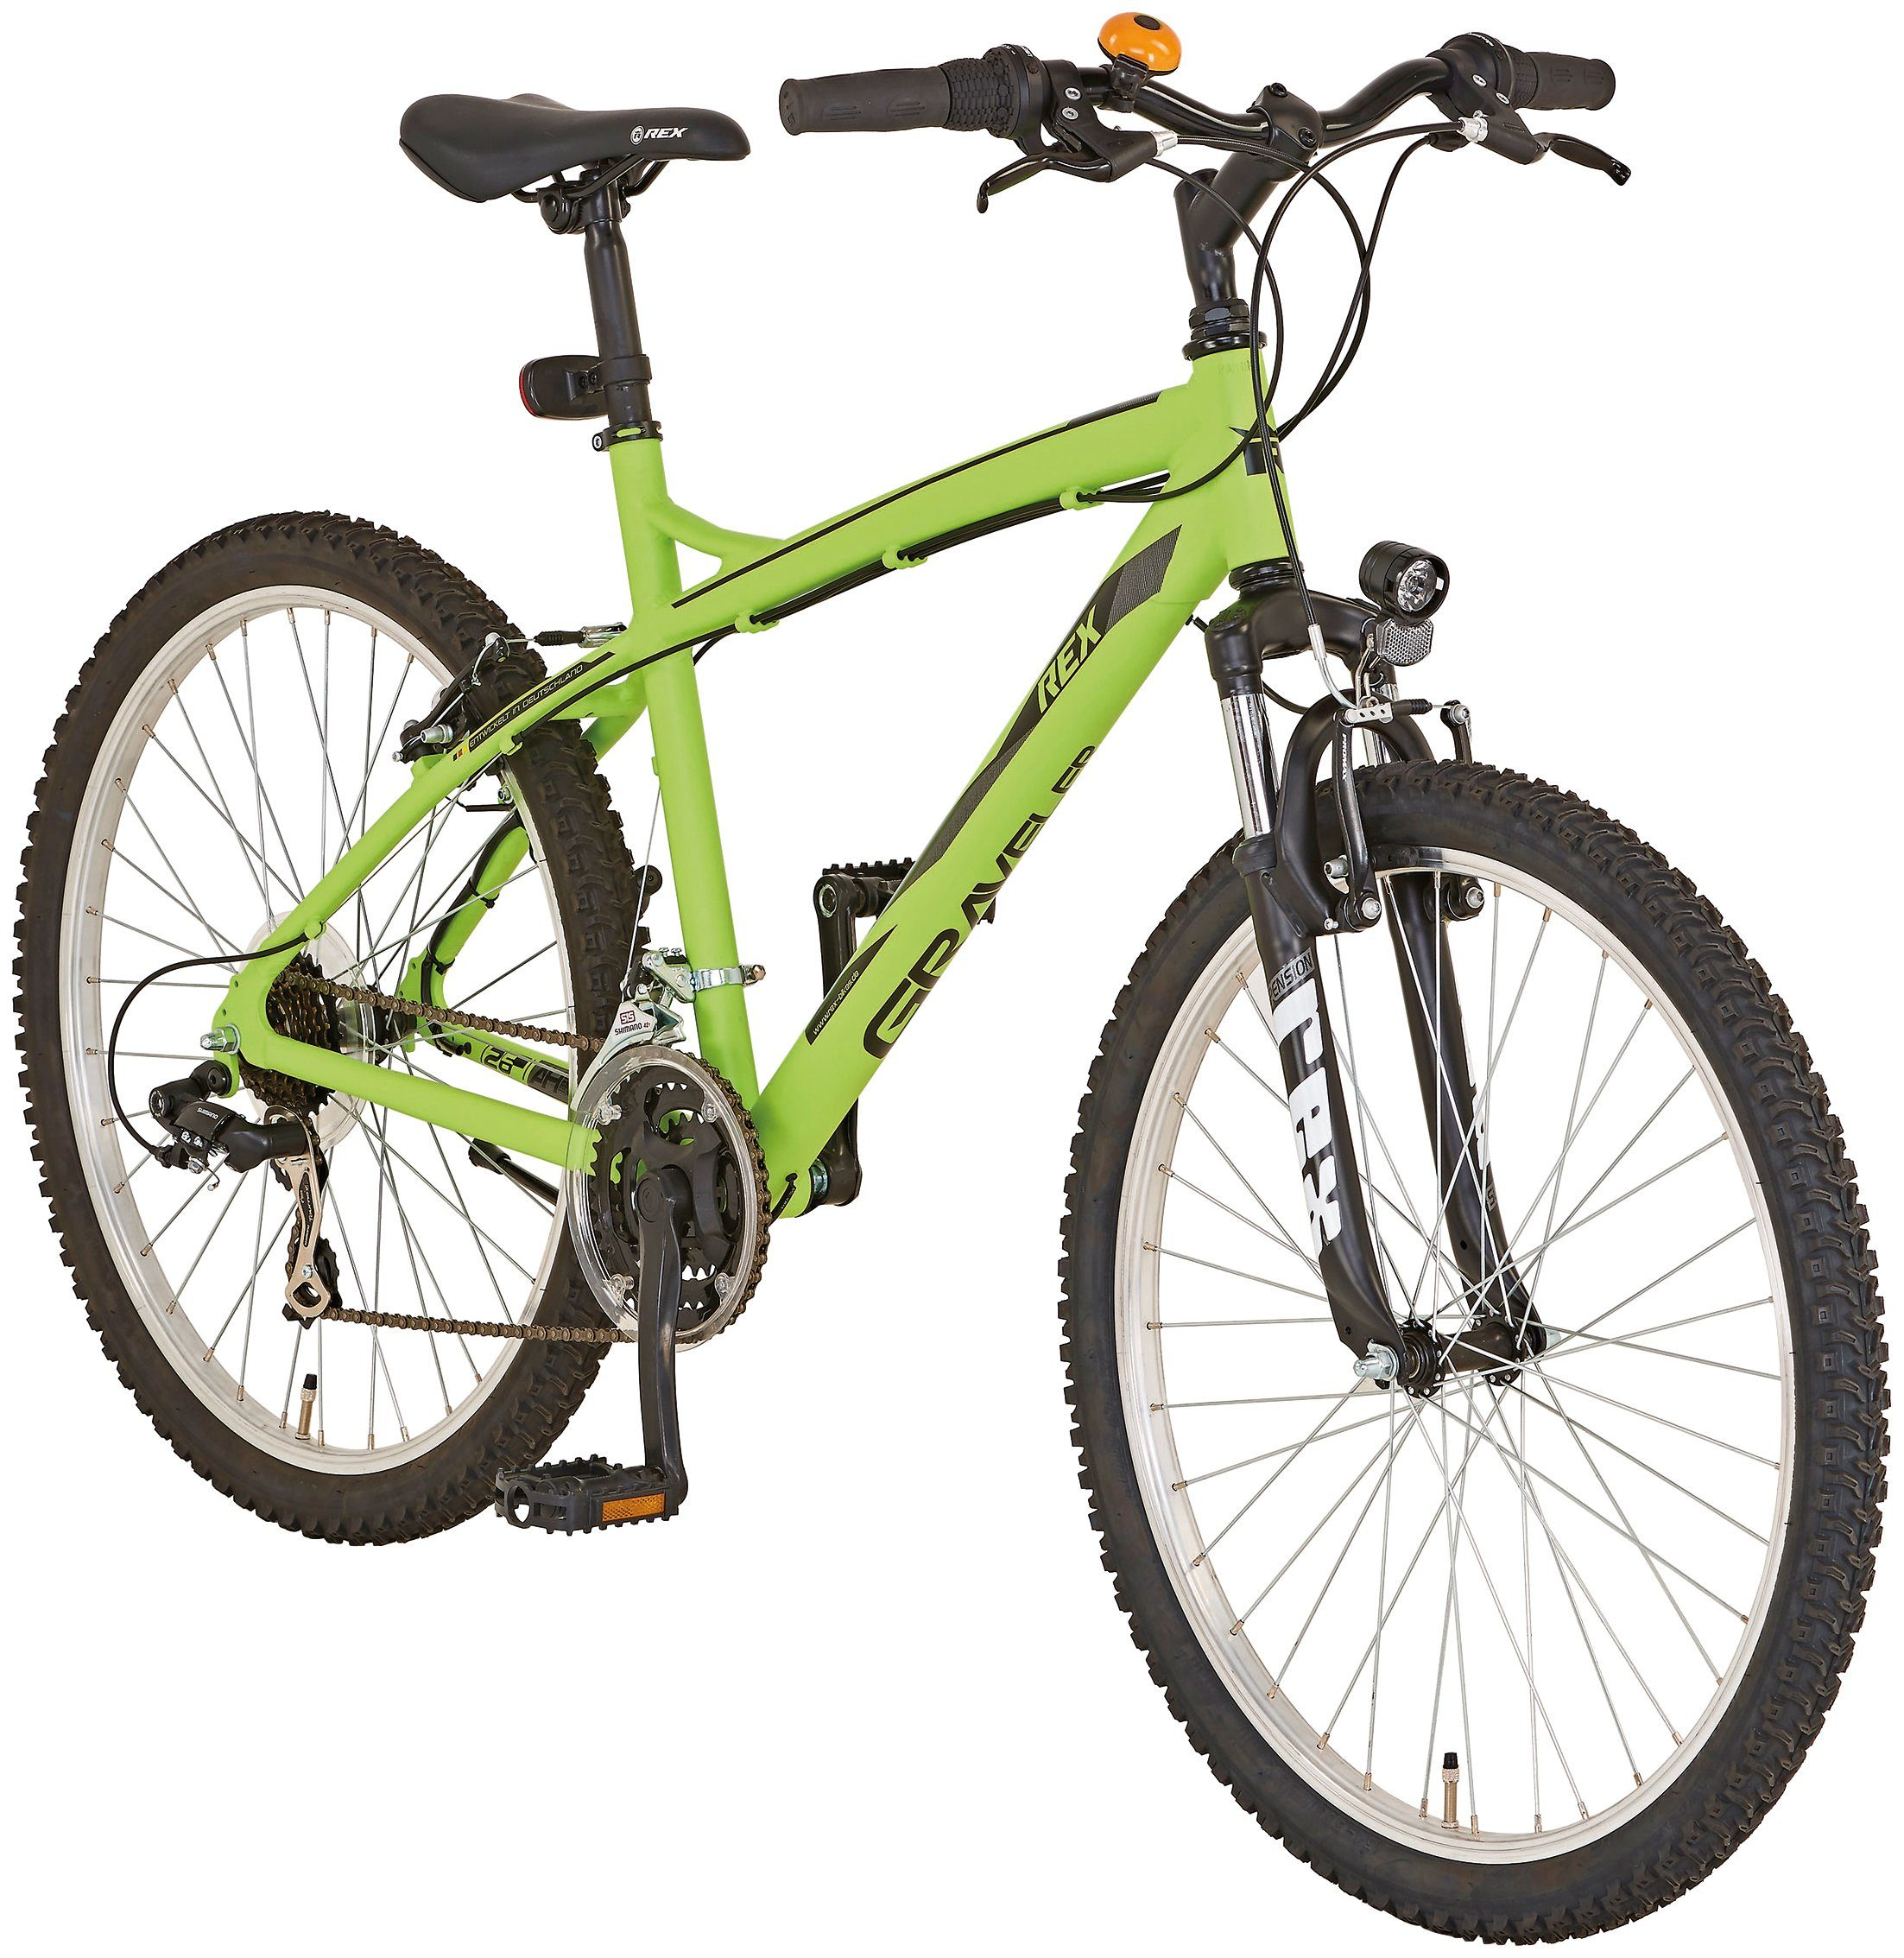 REX All-Terrain-Bike »GRAVELER 8.3«, 26 Zoll, 21-Gang